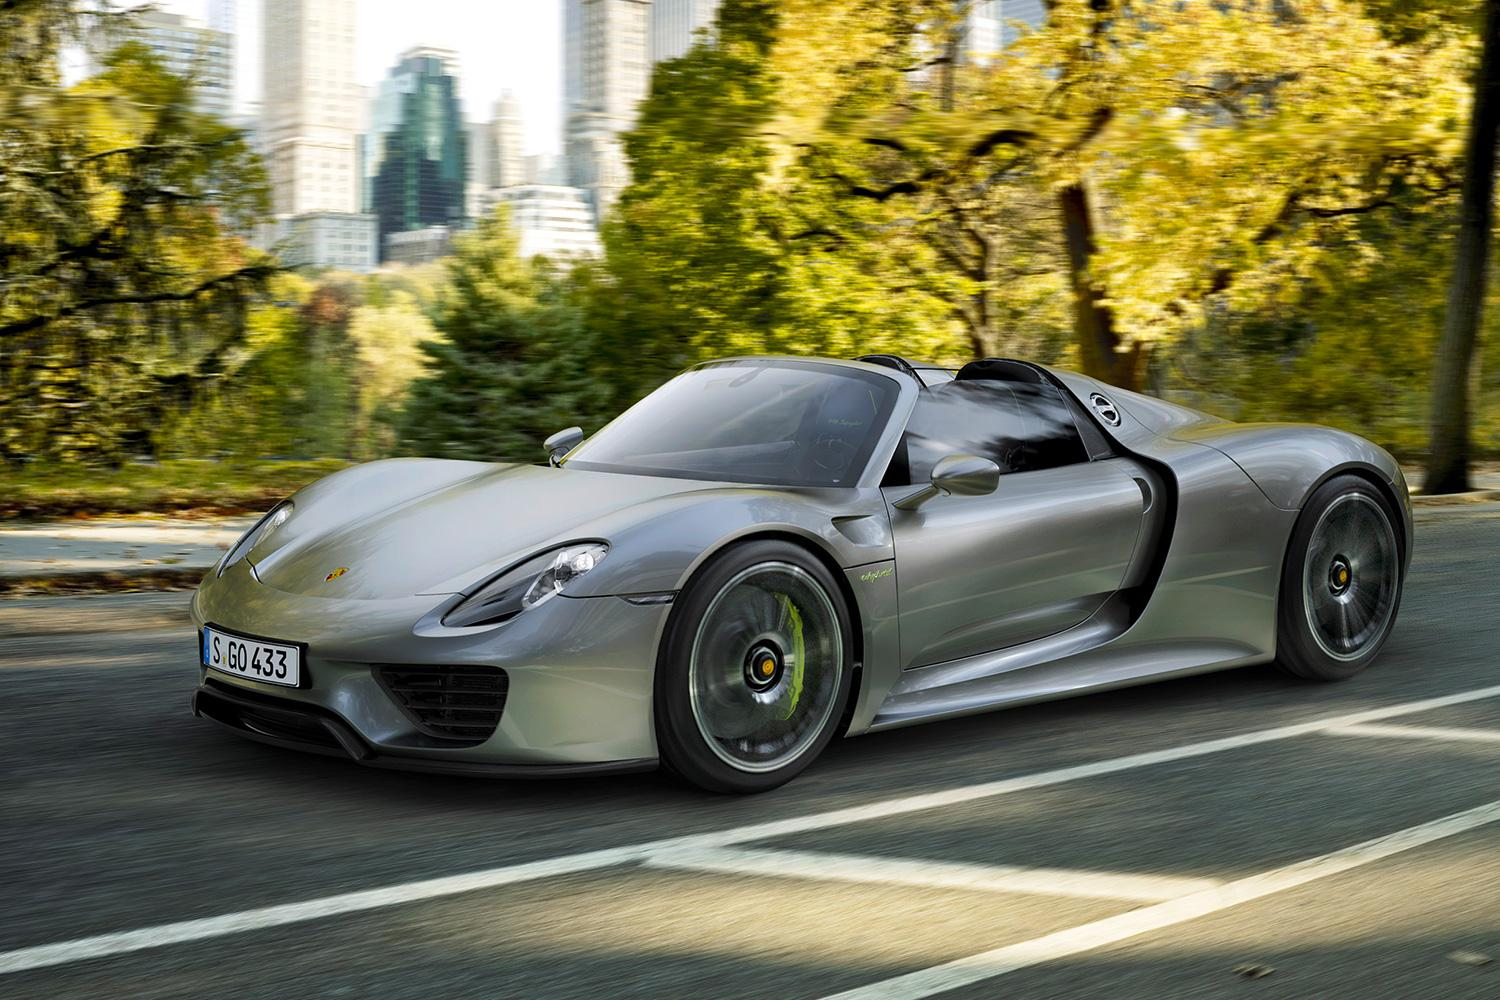 porsche 39 s 918 spyder goes 0 60 mph in 2 5 seconds digital trends. Black Bedroom Furniture Sets. Home Design Ideas